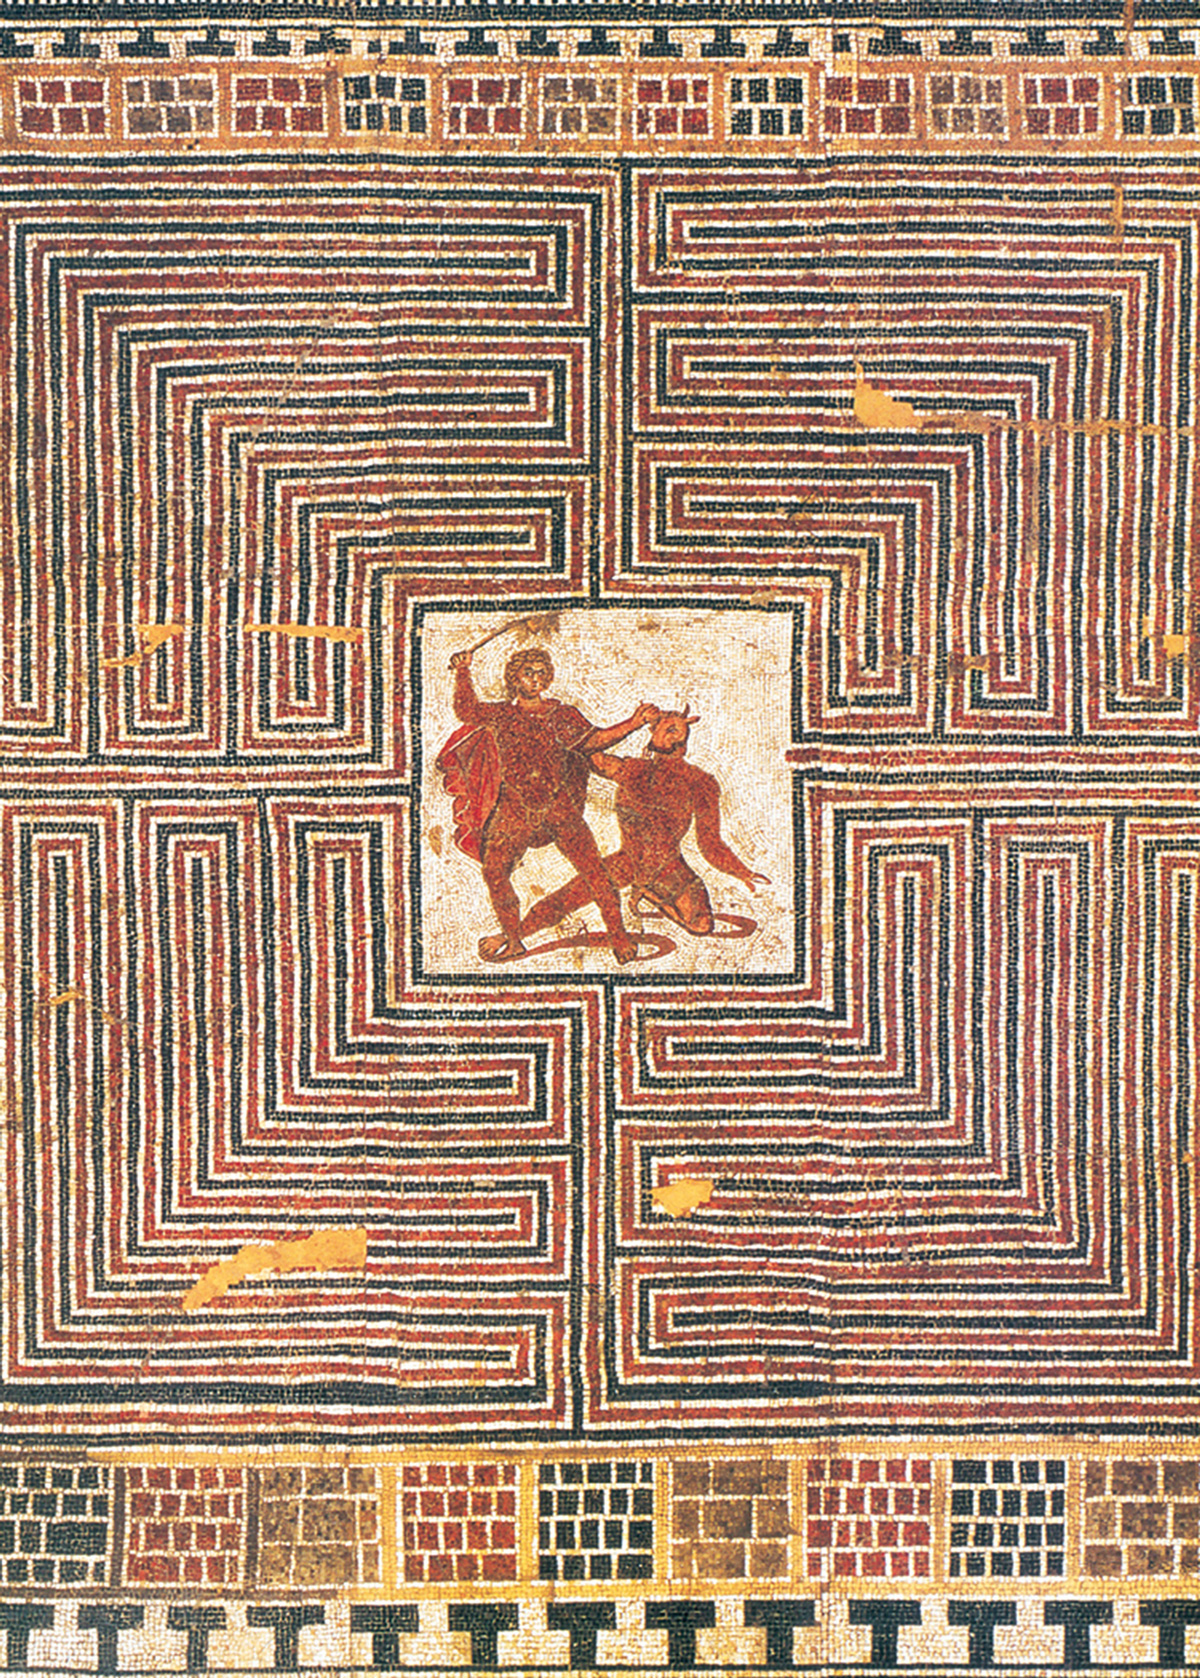 Cabinet Haunted Mazes How To Make A Classical 5 Circuit Labyrinth From Meander Roman Mosaic Depicting The Battle Between Theseus And Minotaur In Ca 275300 Ce